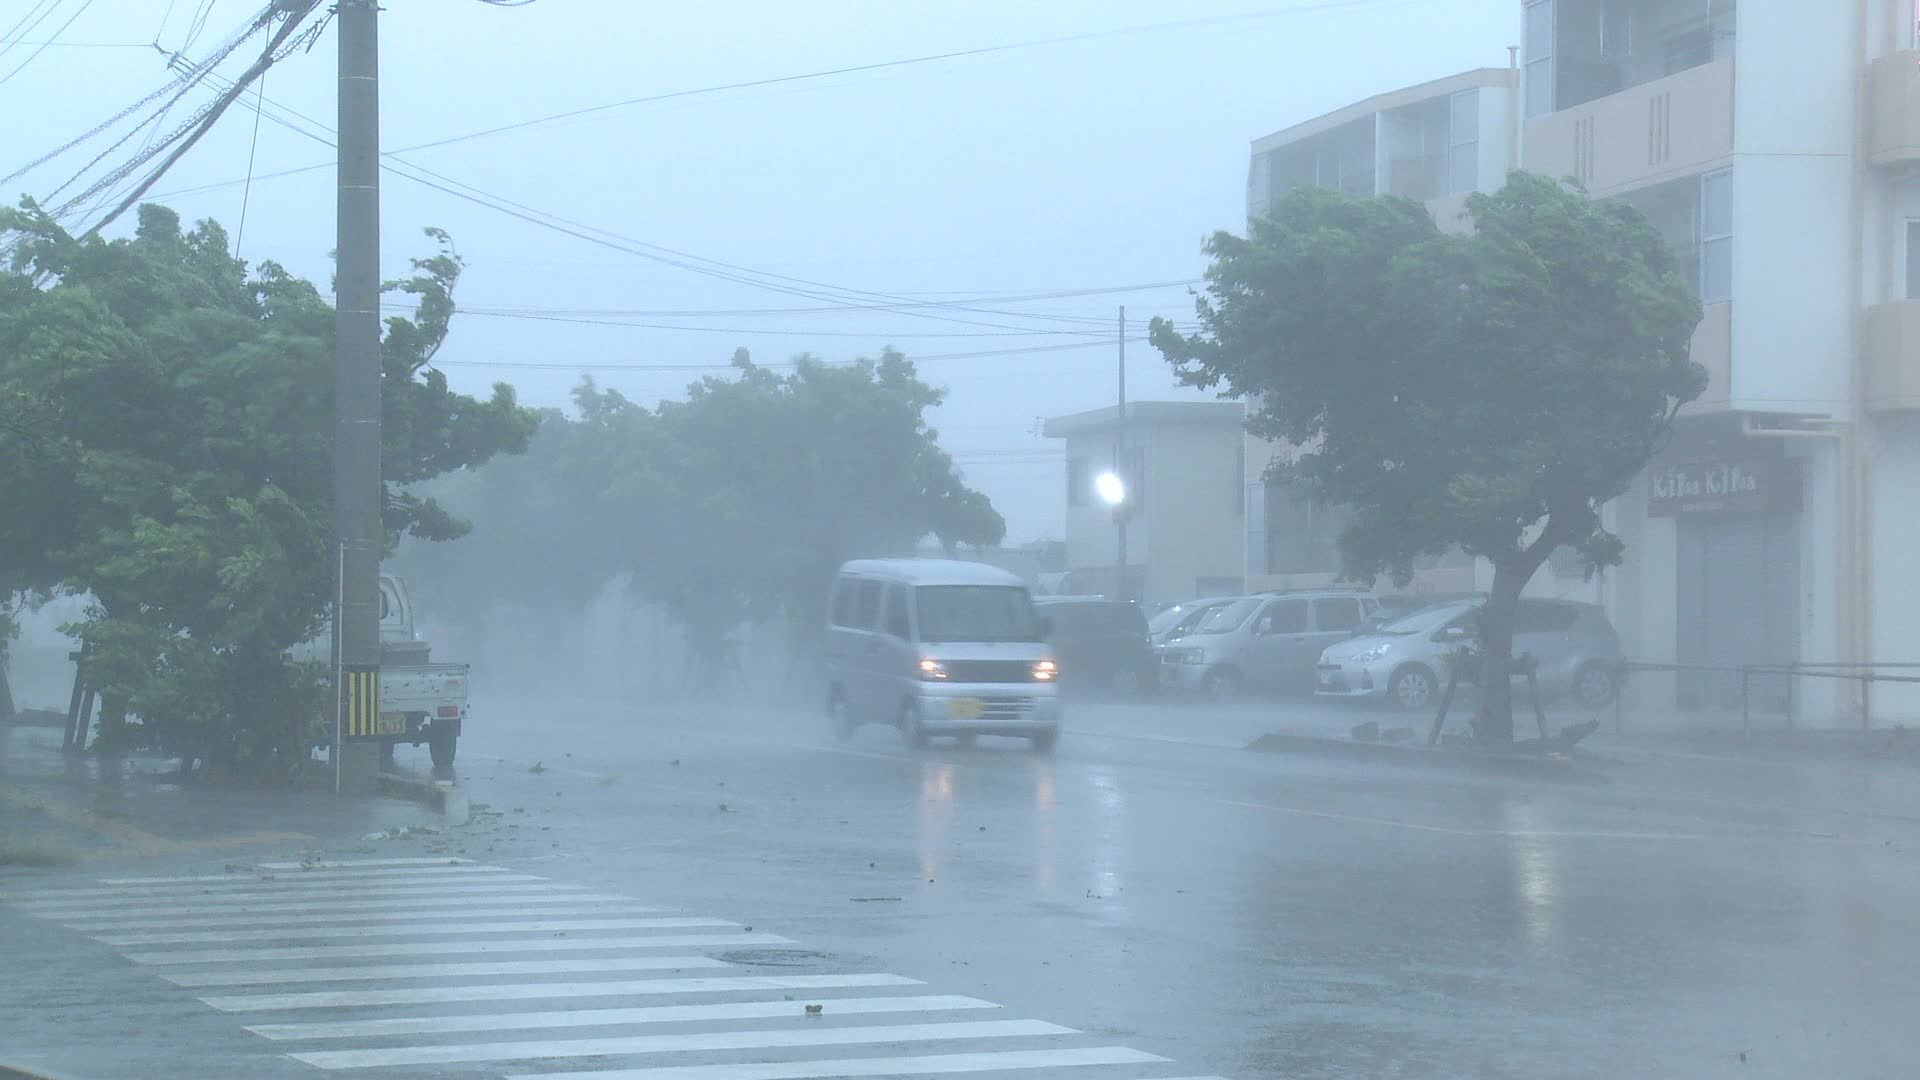 Hurricane Wind And Rain Lash Urban Area Stock Footage Rain Lash Hurricane Wind Wind And Rain Hurricane Winds Urban Area